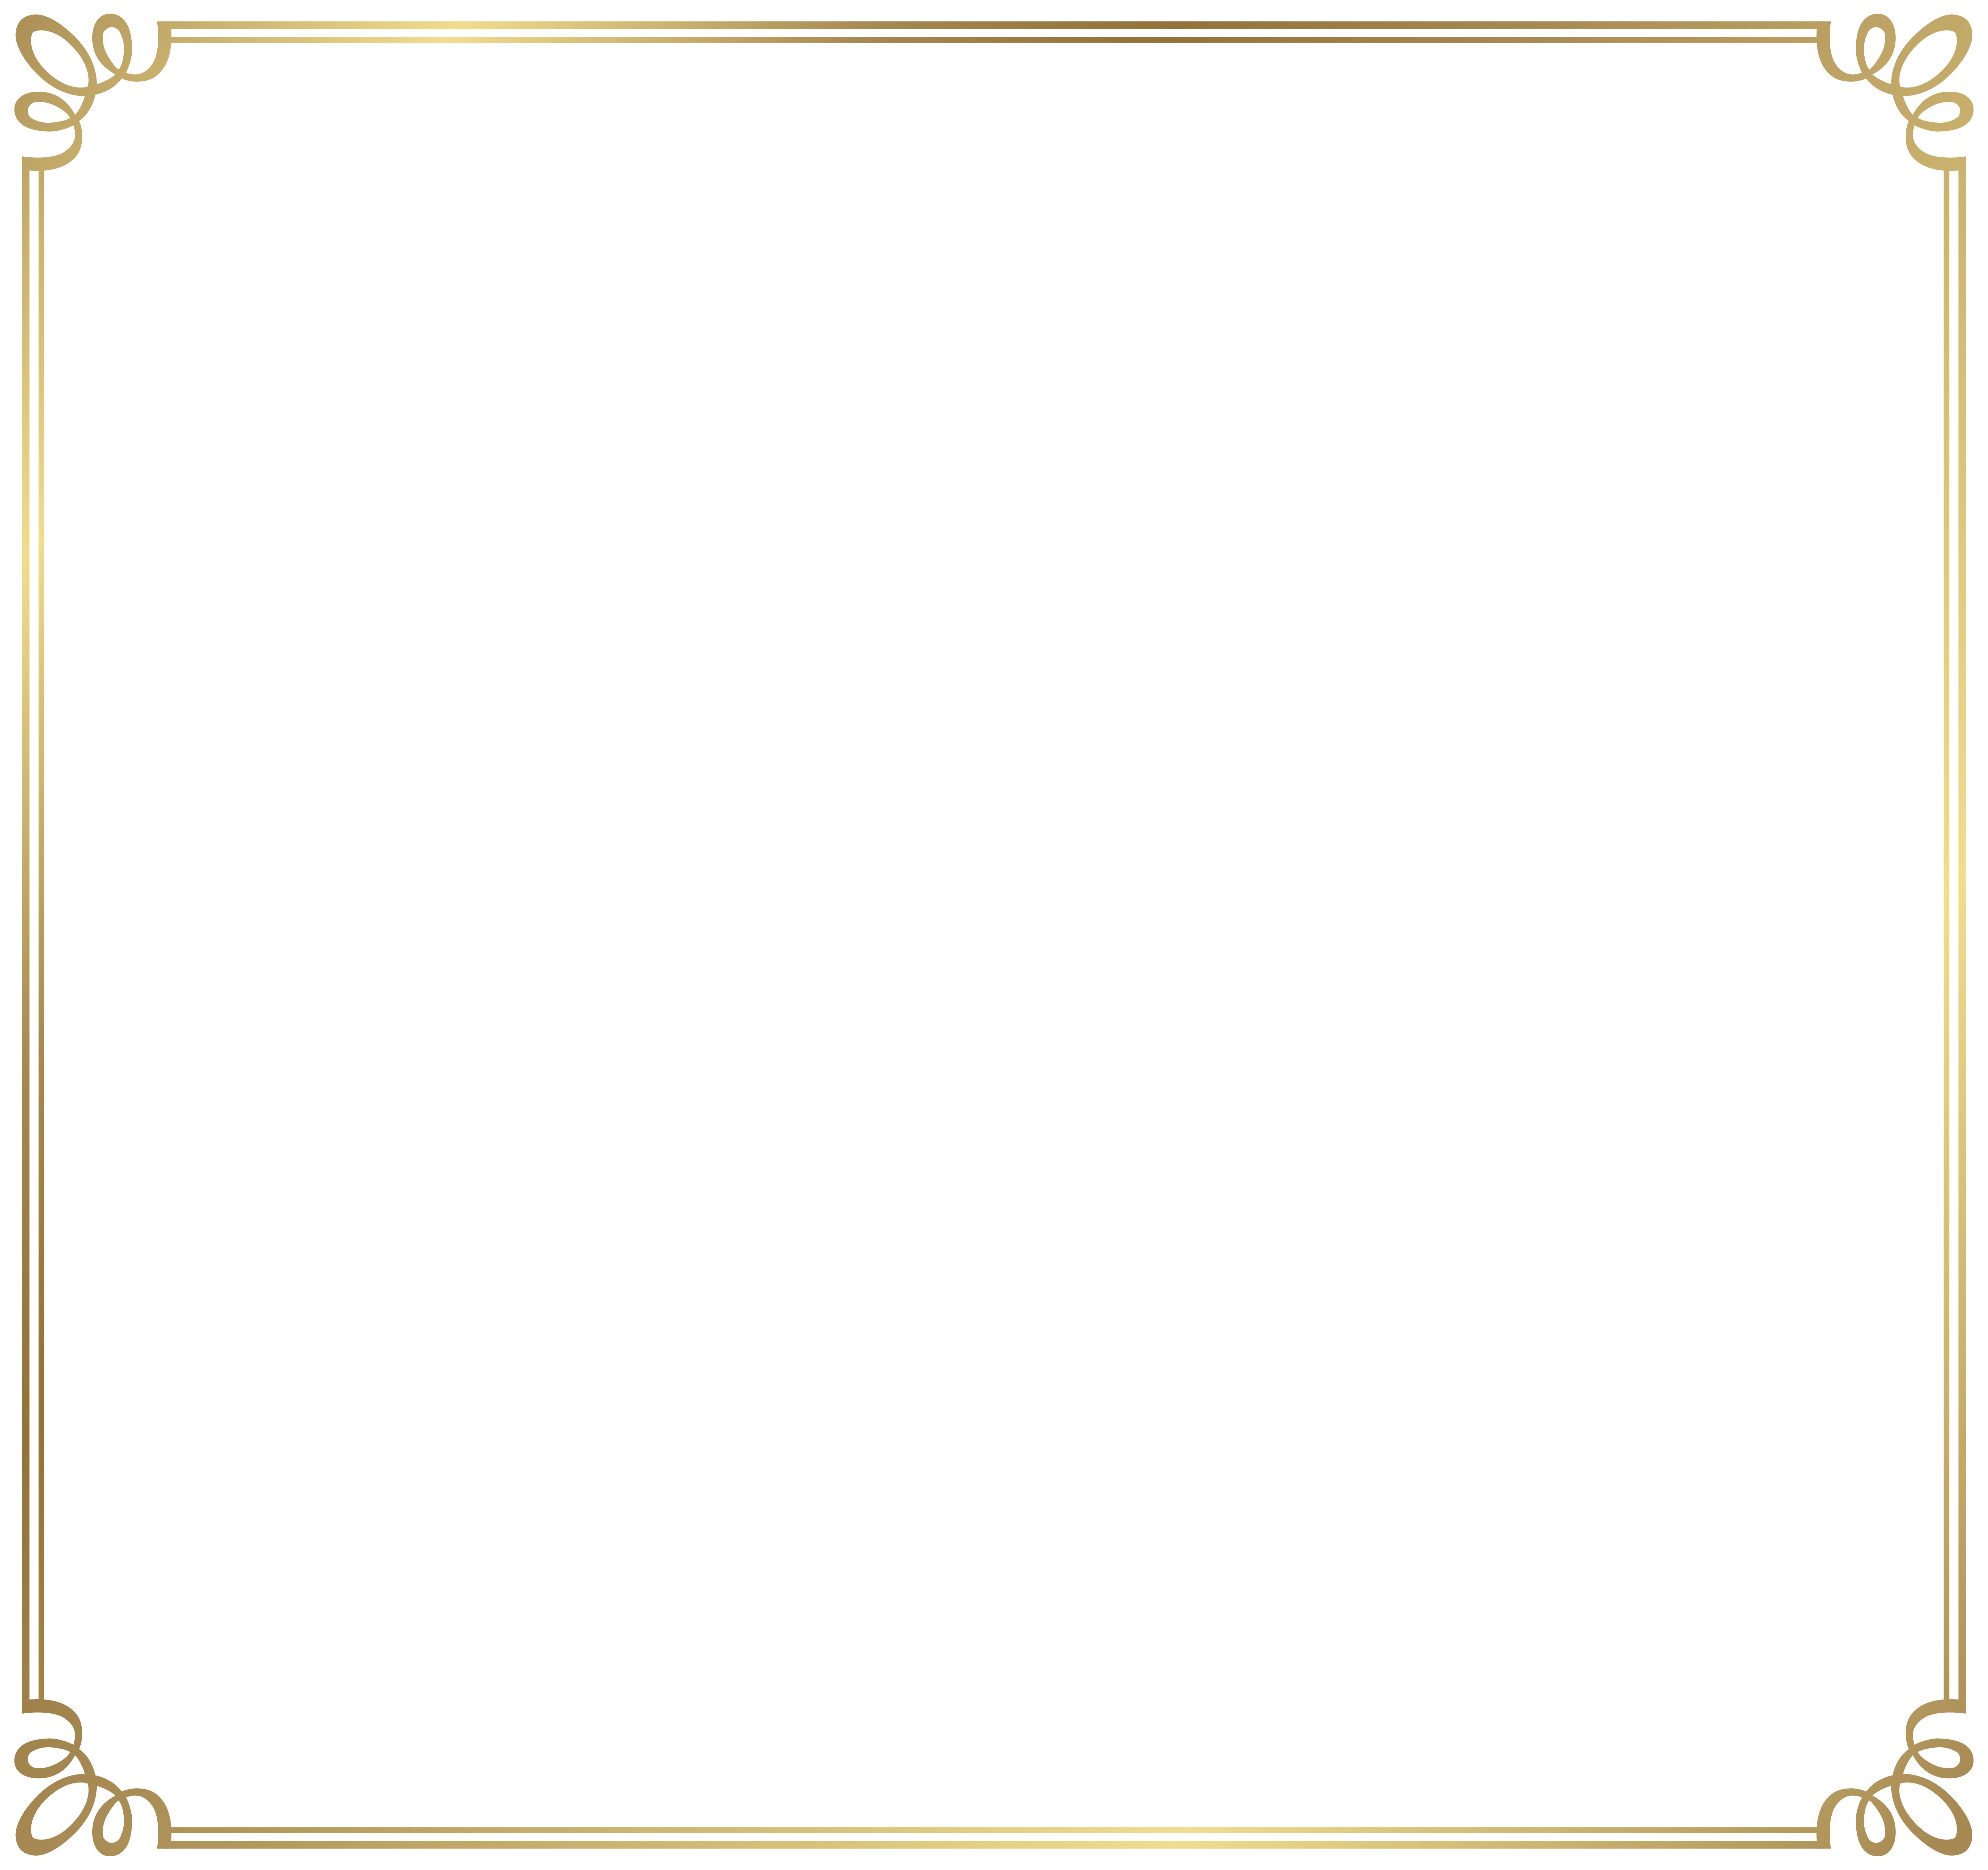 Border clipart png. Decorative frame image gallery